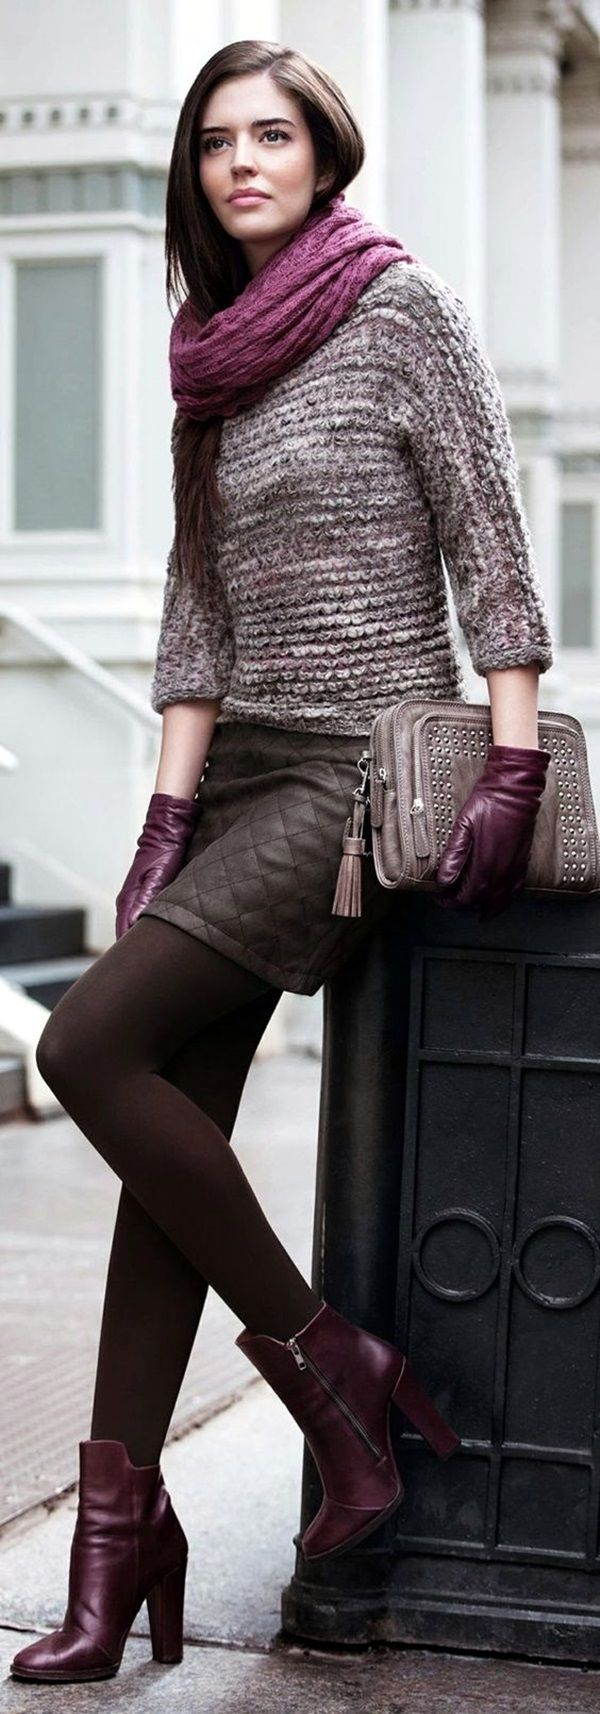 Work Outfits To Wear This Fall (4). Love the textures in this outfit!